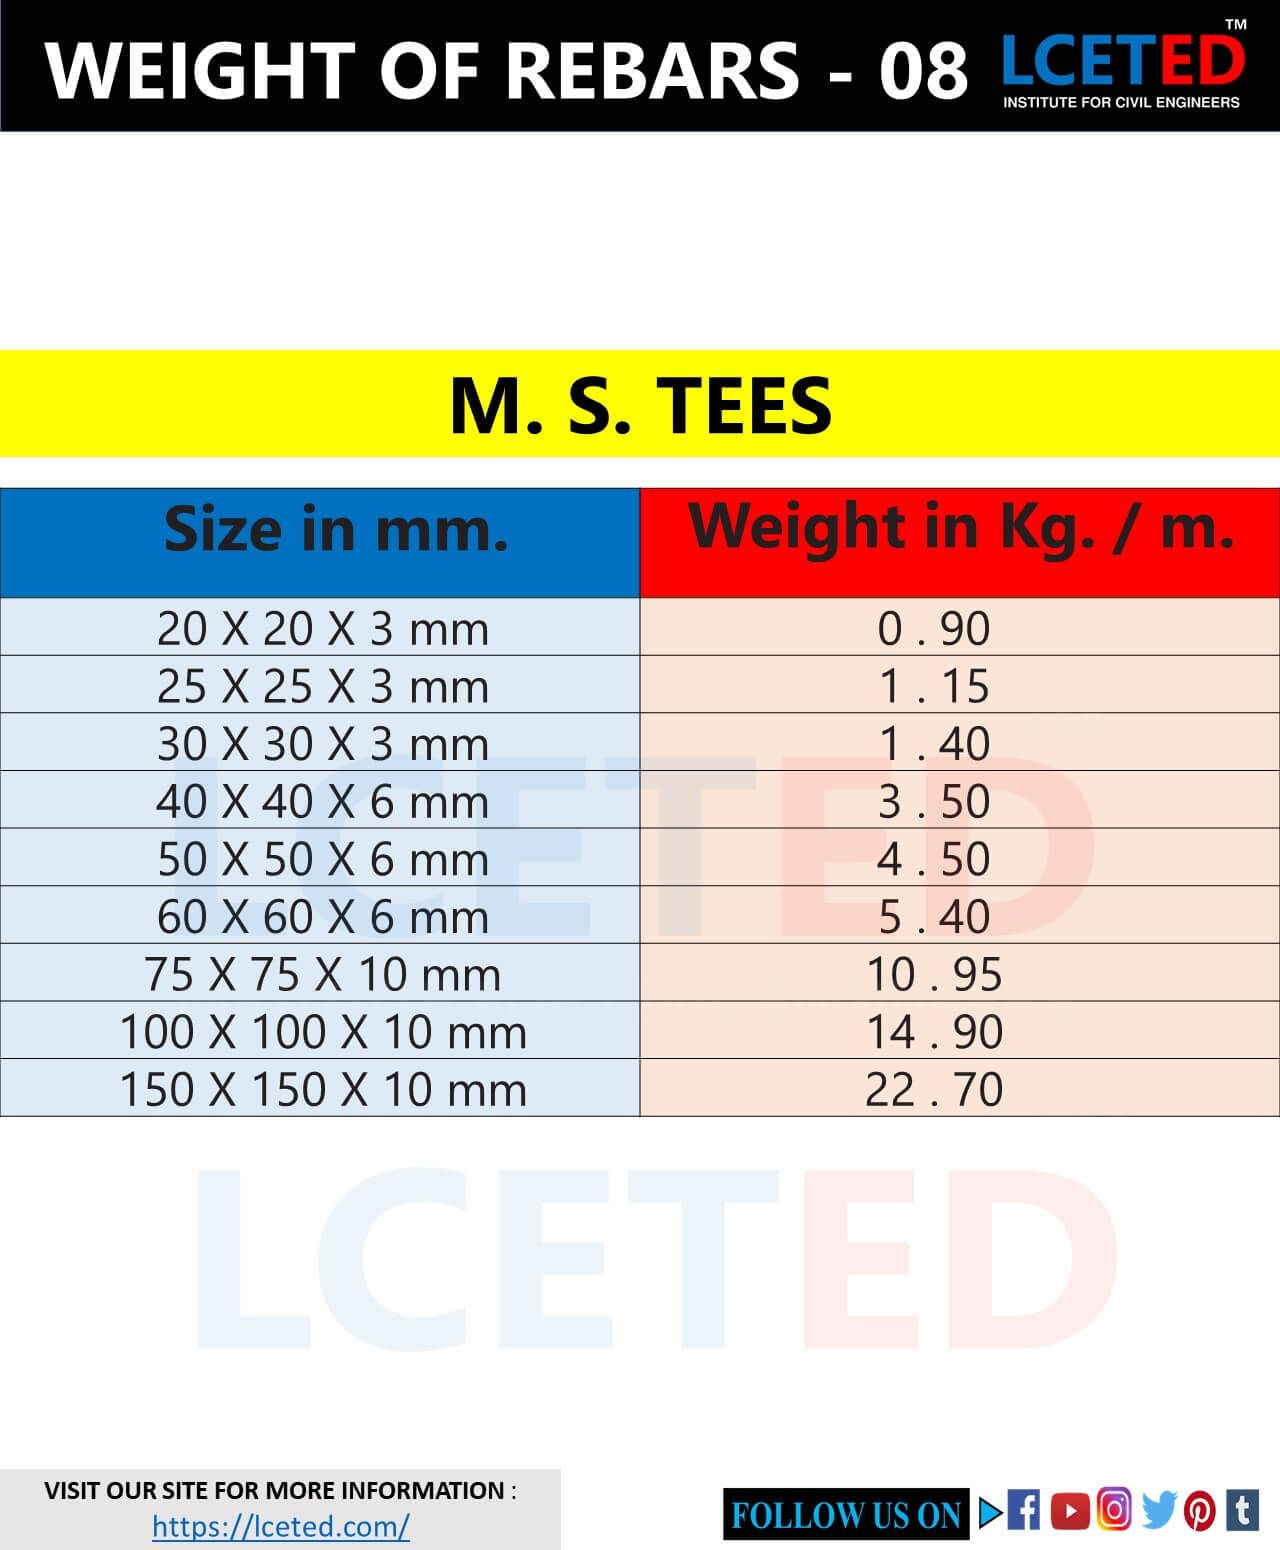 Different Shapes Of Rebars Weight Chart In 2020 Weight Charts Civil Engineering Civil Engineering Design